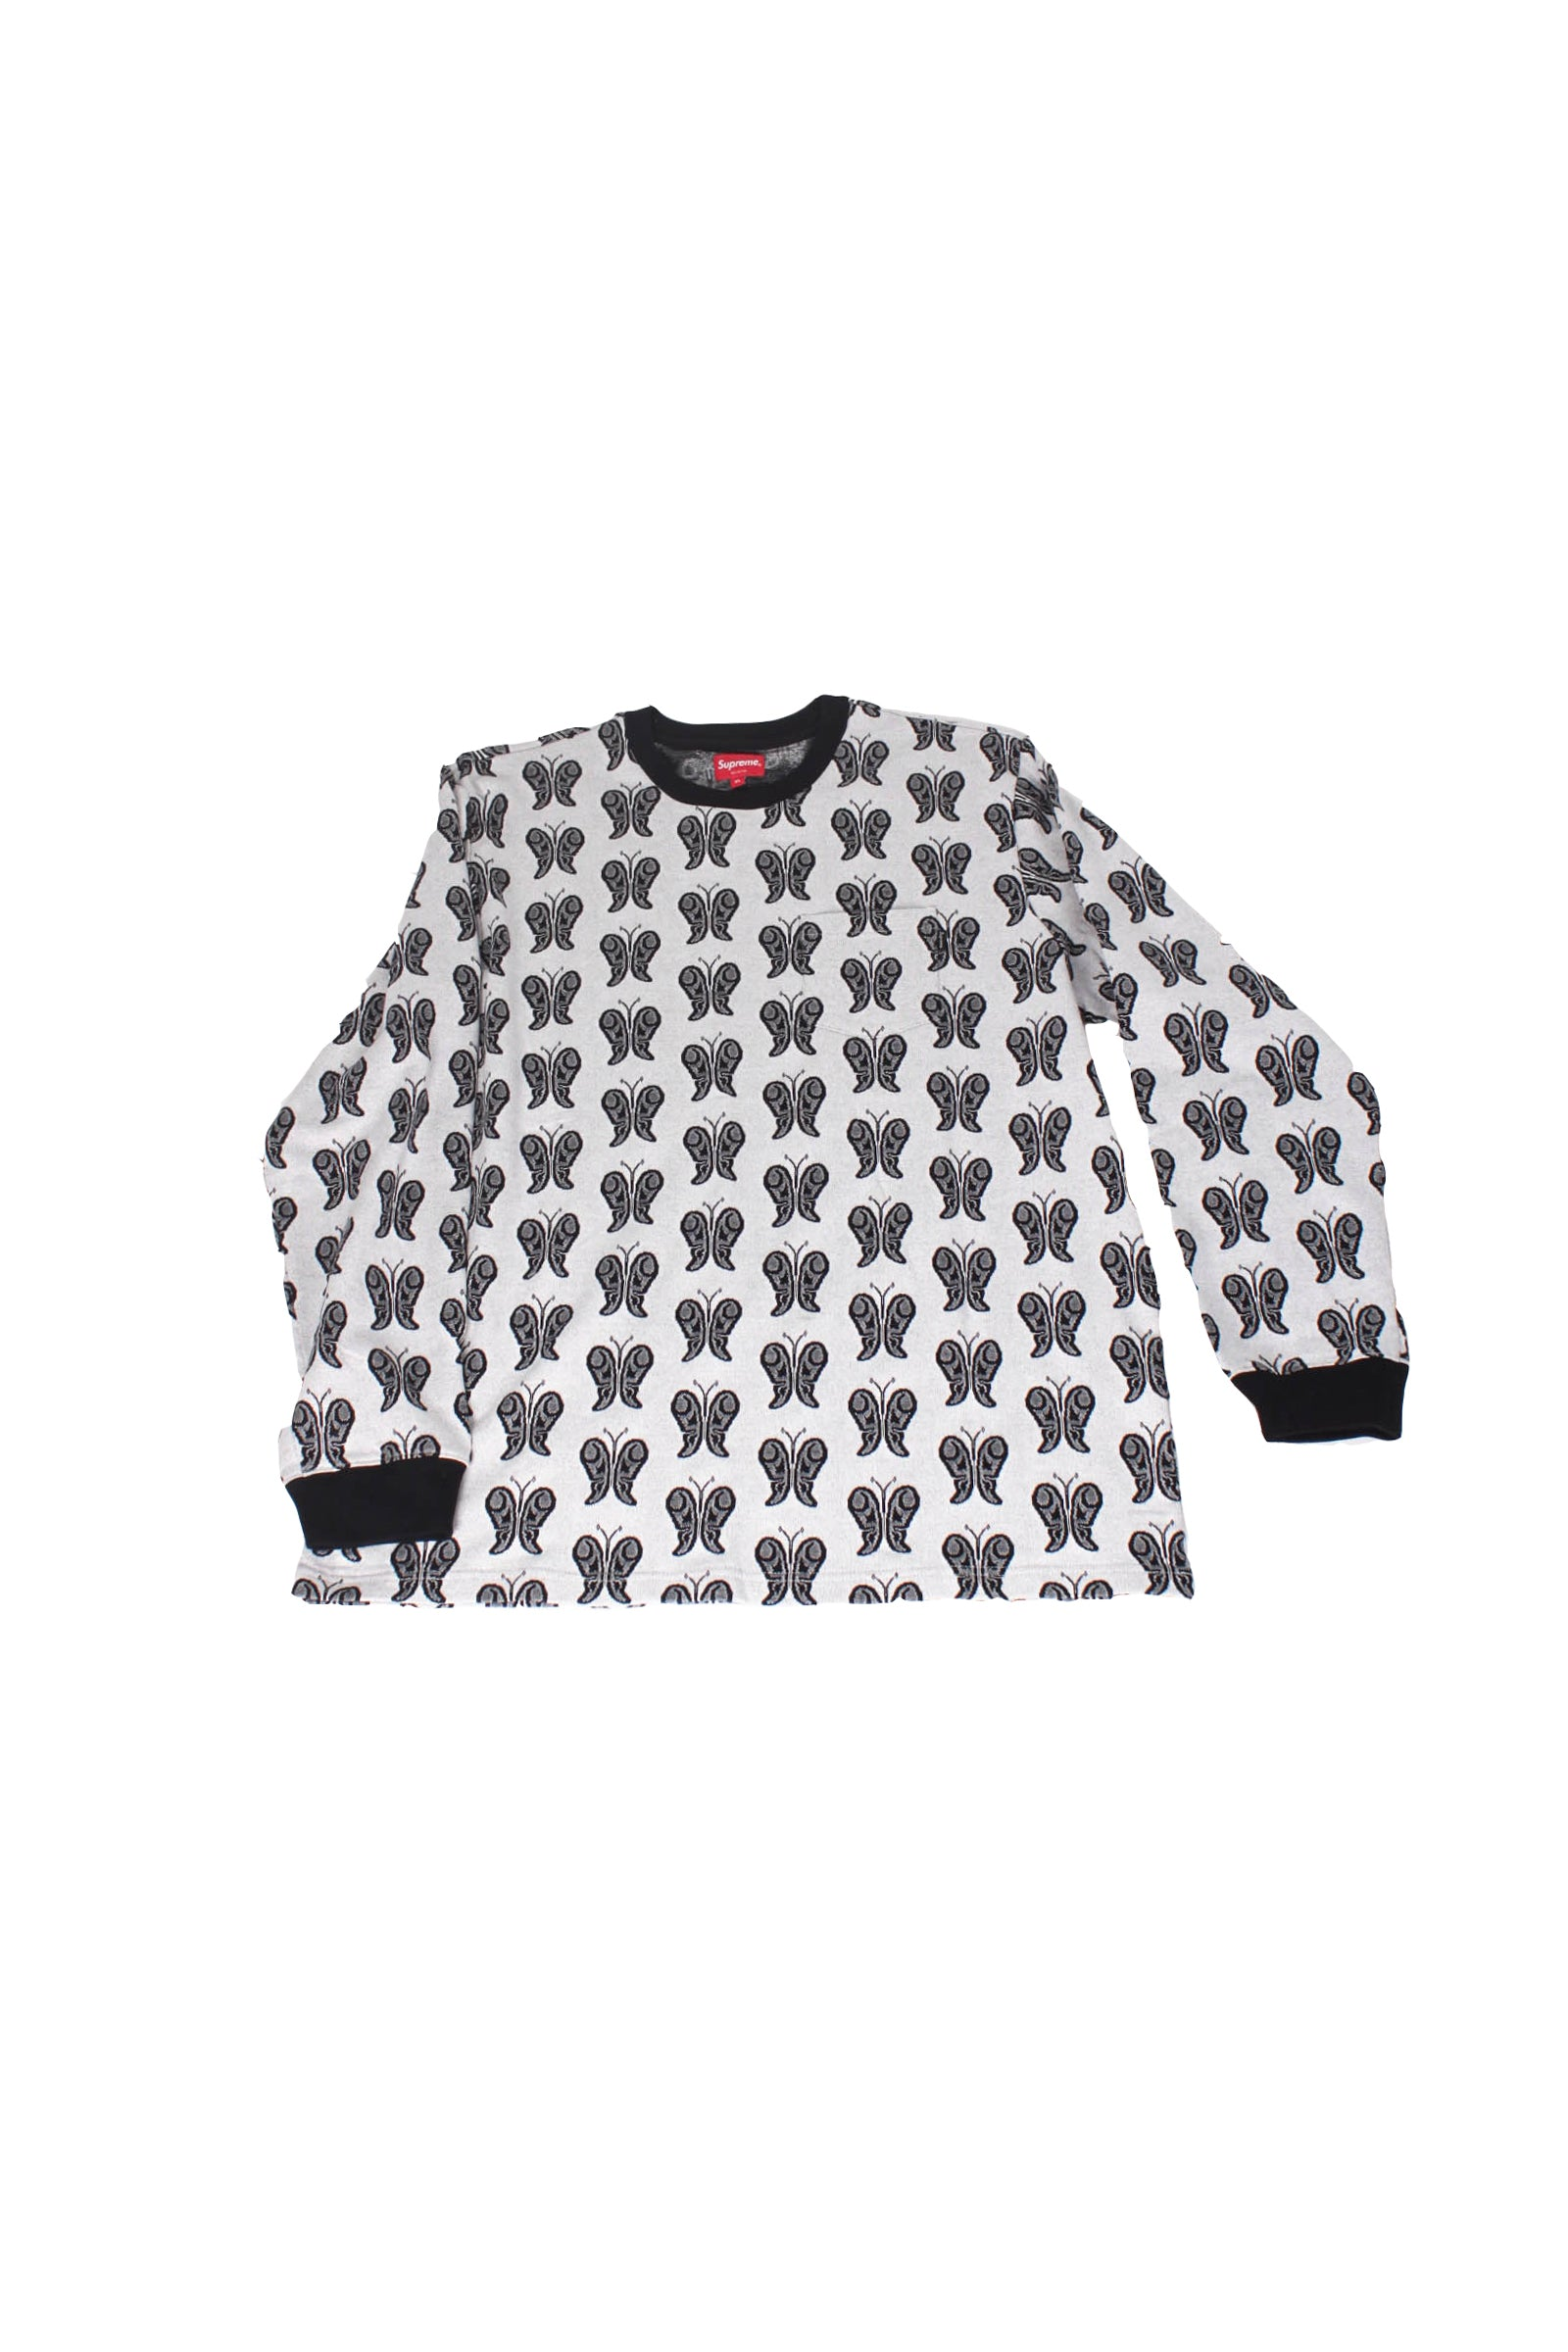 Supreme Butterfly jacquard top Size XL